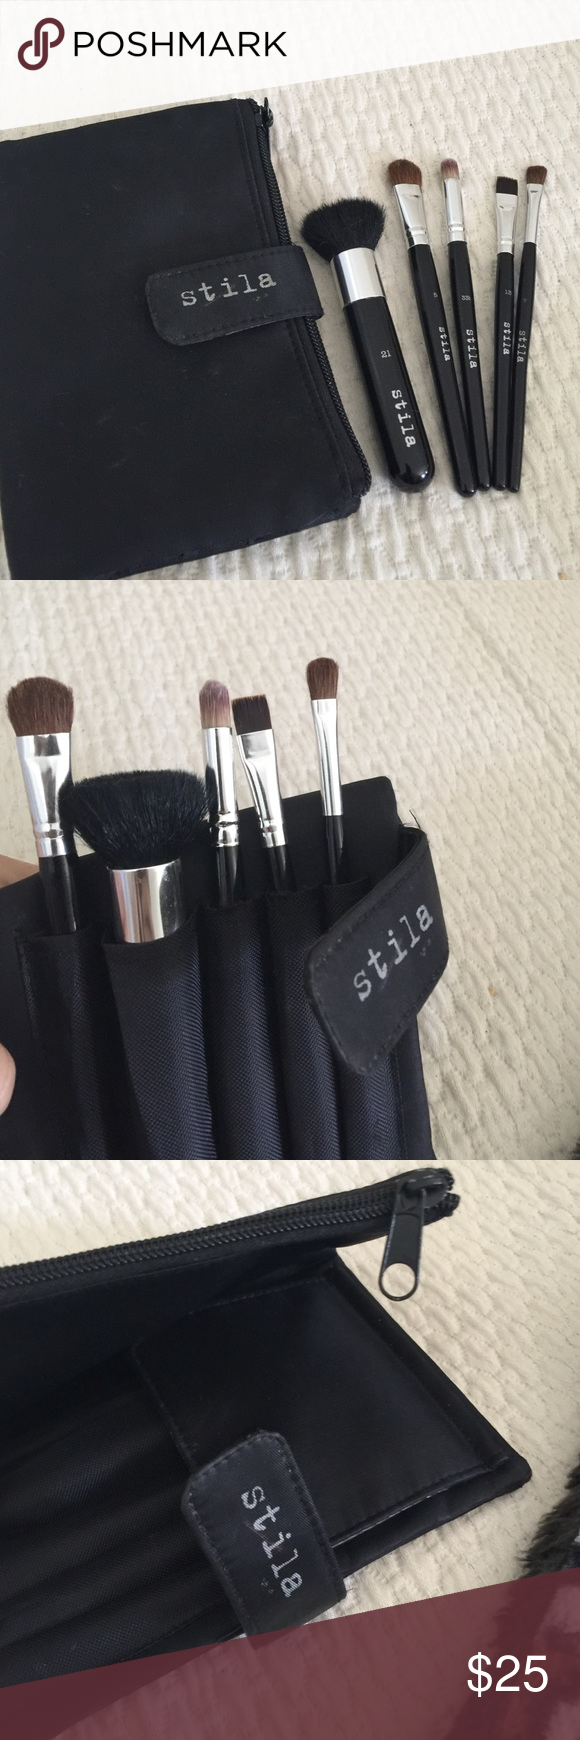 STILA Travel Make up brush set w/ zipper pouch5 Makeup